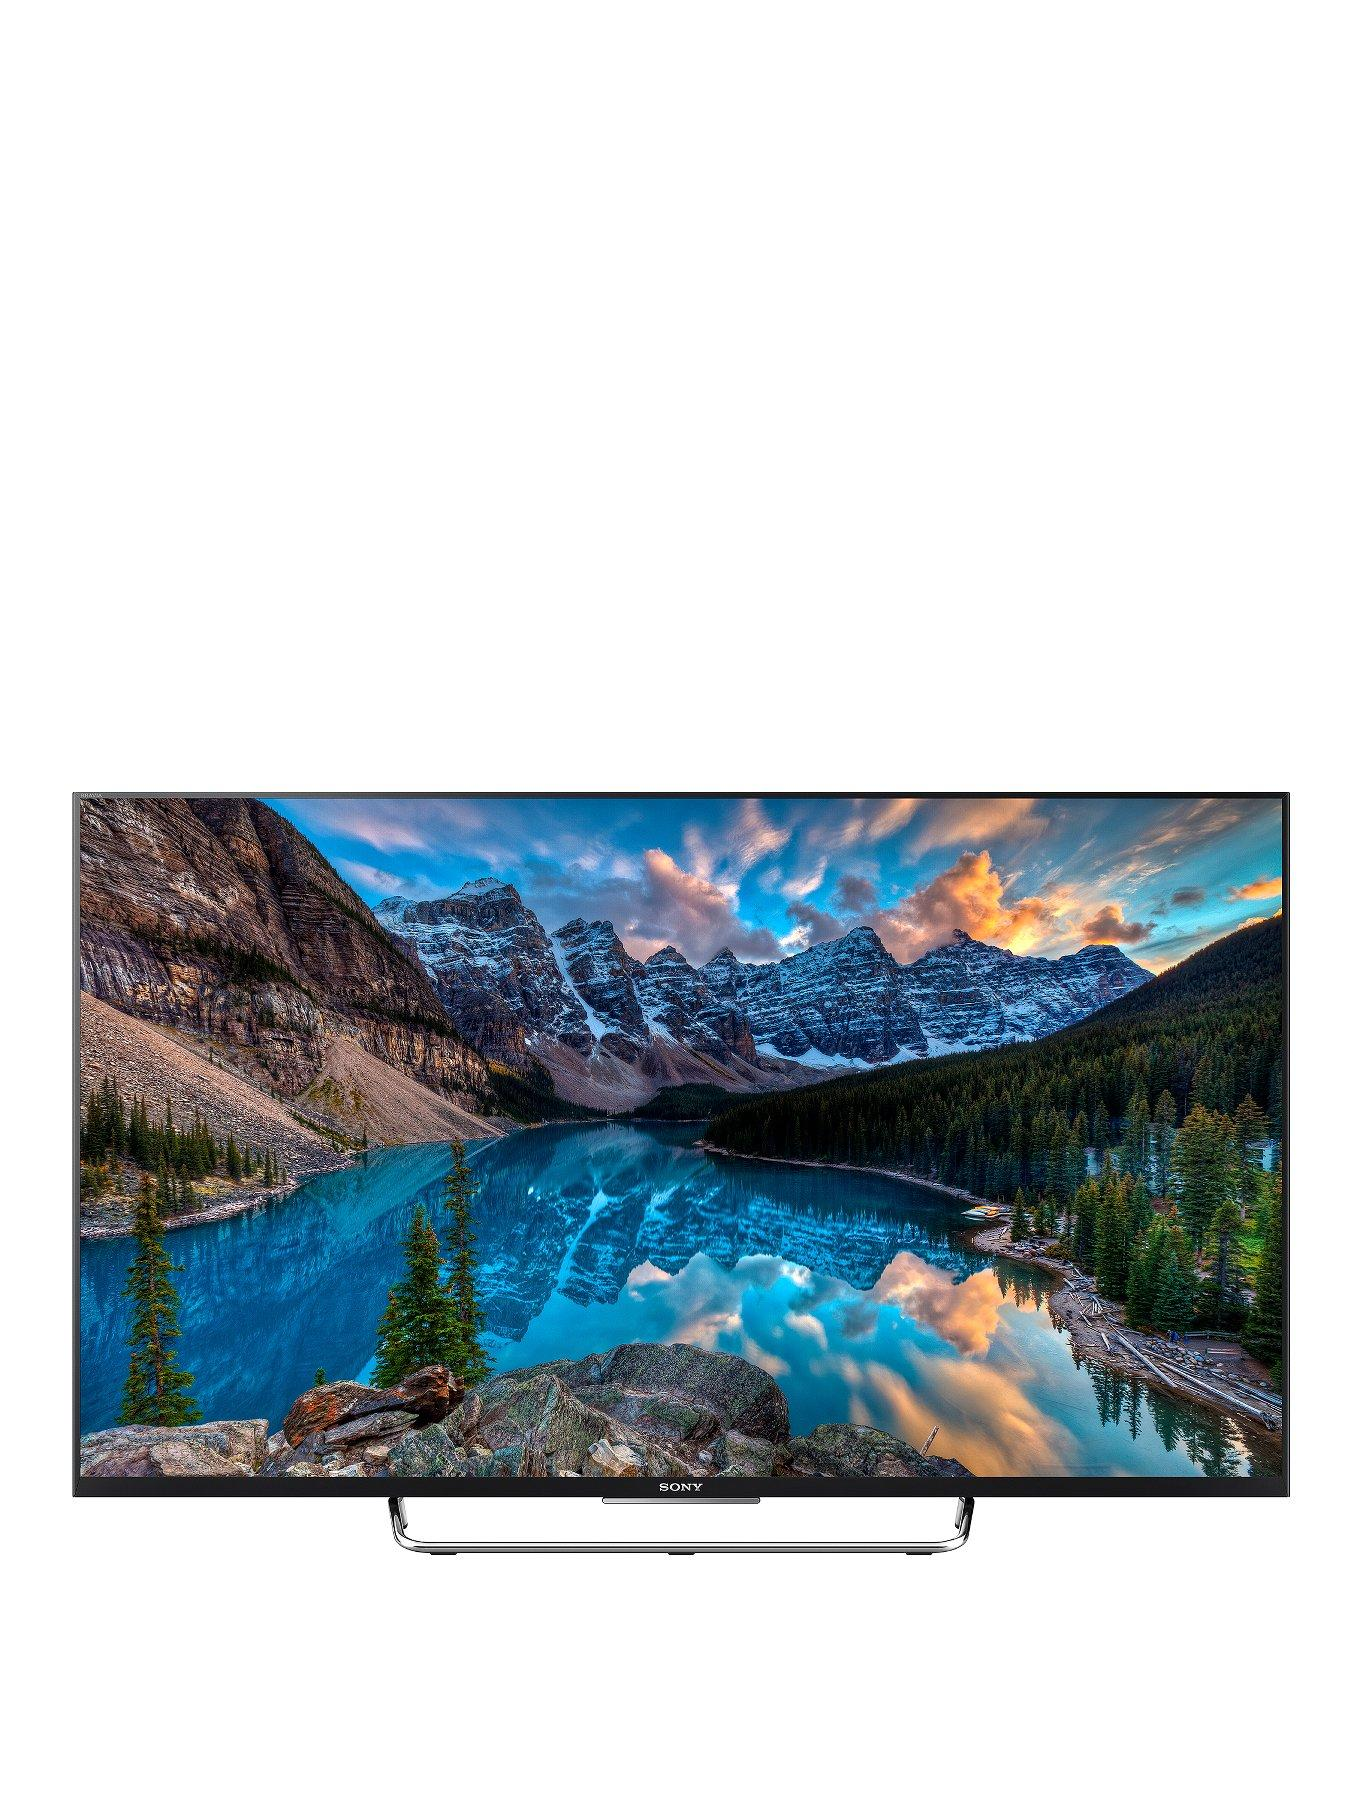 Sony KDL-50W805C 50-Inch Android Widescreen 1080p Full HD 3D Smart TV